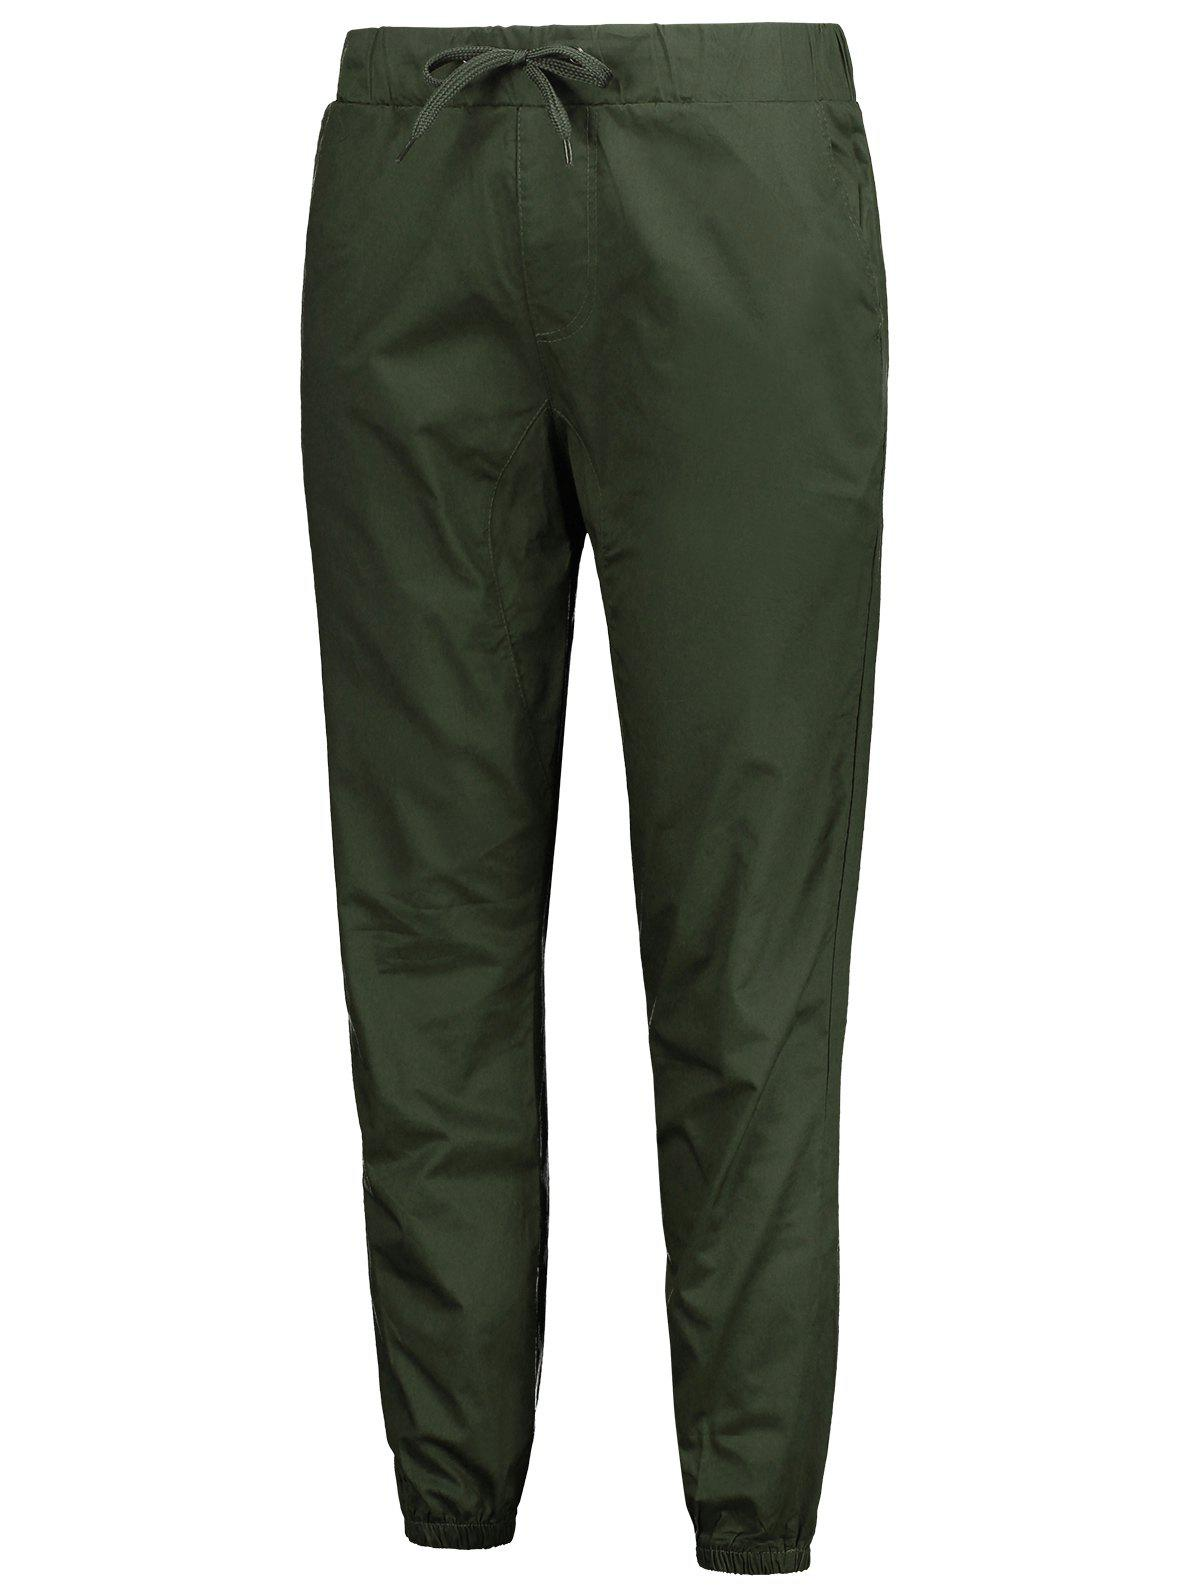 Latest Solid Color Elastic Waist Jogger Pants